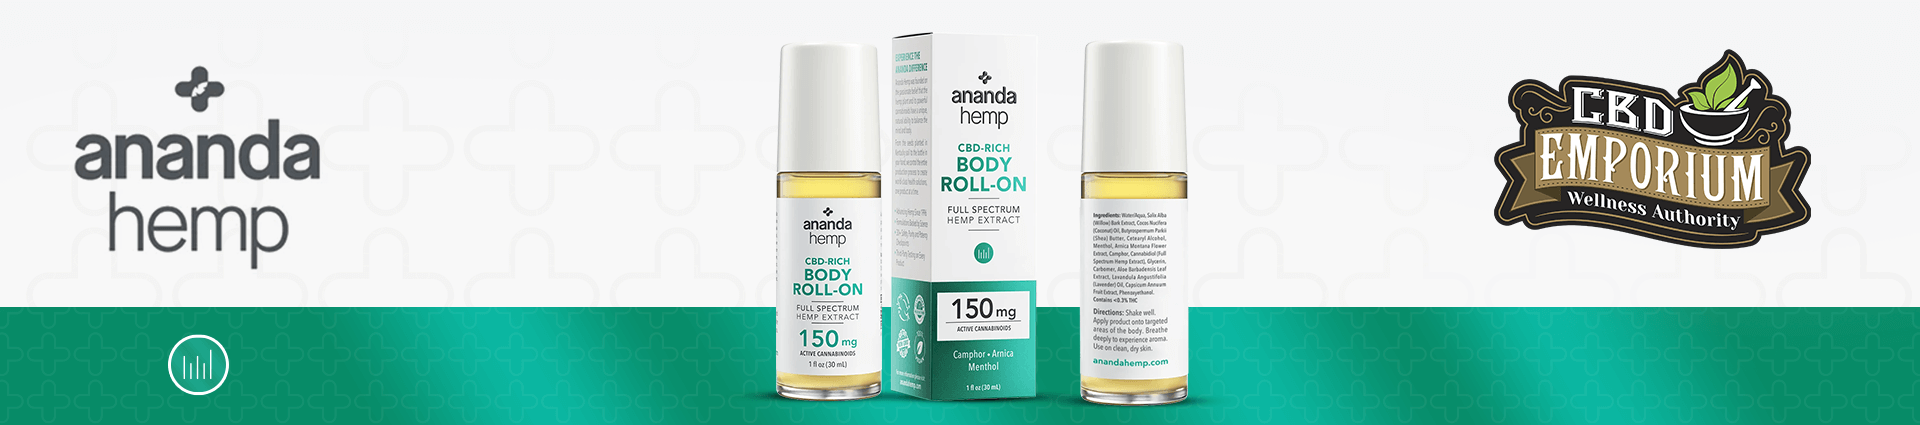 Ananda Hemp CBD Roll-On carried at CBD Emporium